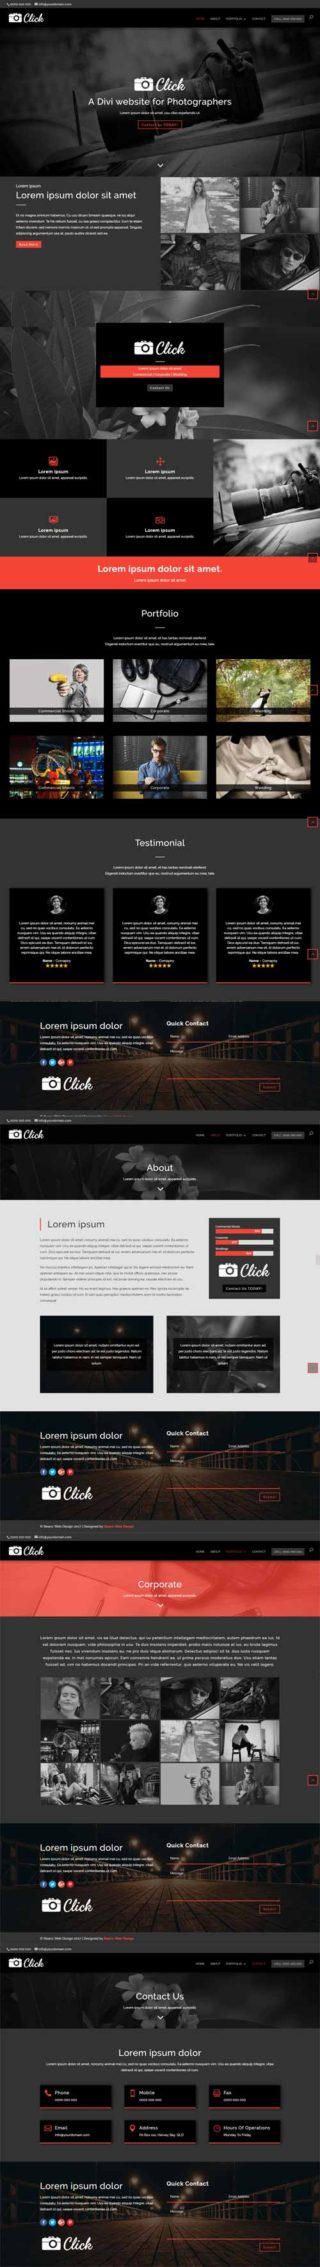 divi layout for photographers